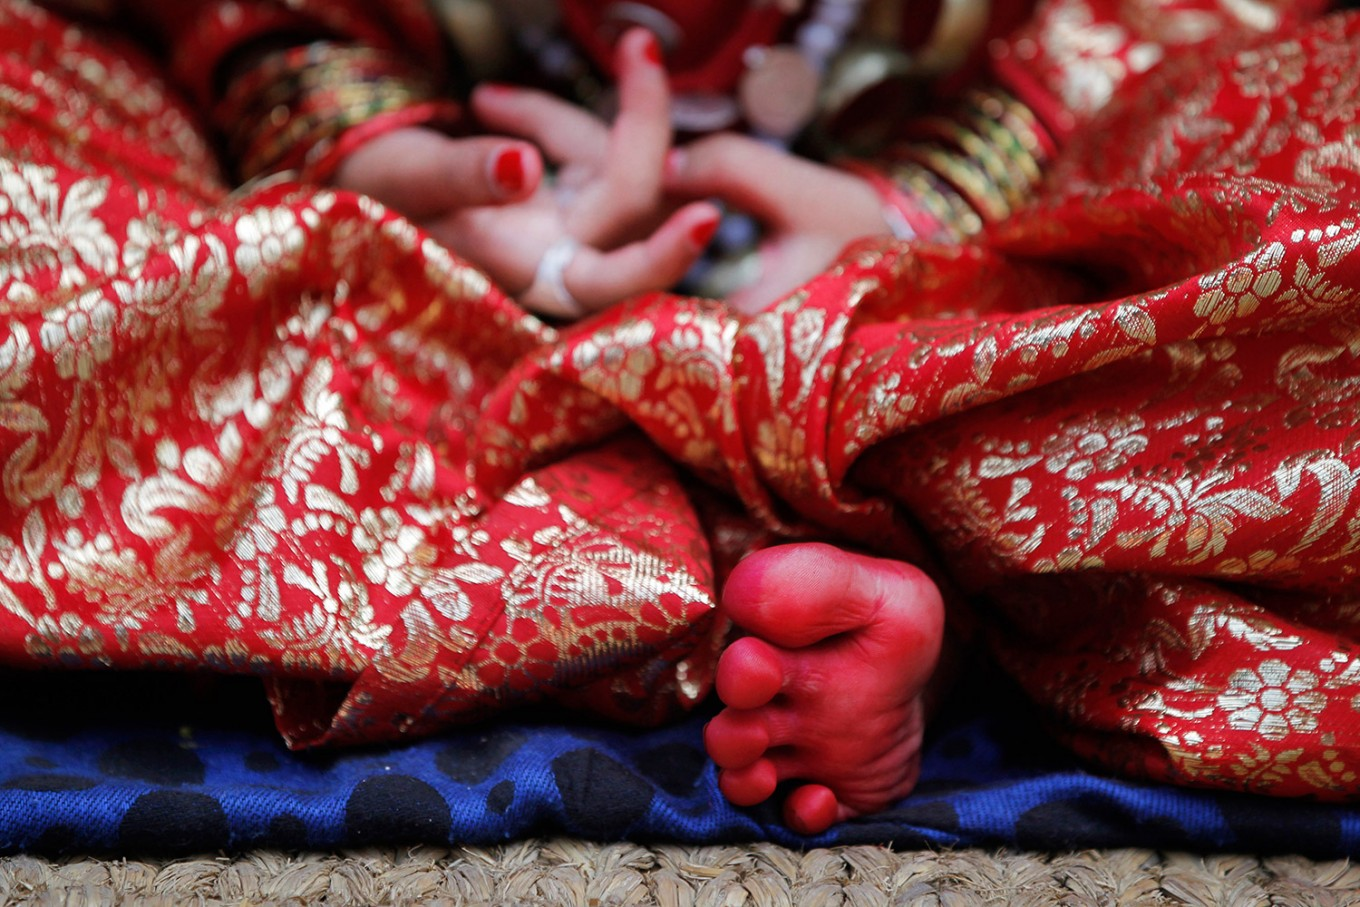 A Nepalese girl, wearing traditional attire with her feet dipped in vermillion paste, waits for Kumari puja to start at the Hanuman Dhoka temple, in Kathmandu, Nepal, Wednesday, Sept. 14, 2016.  AP Photo/Niranjan Shrestha